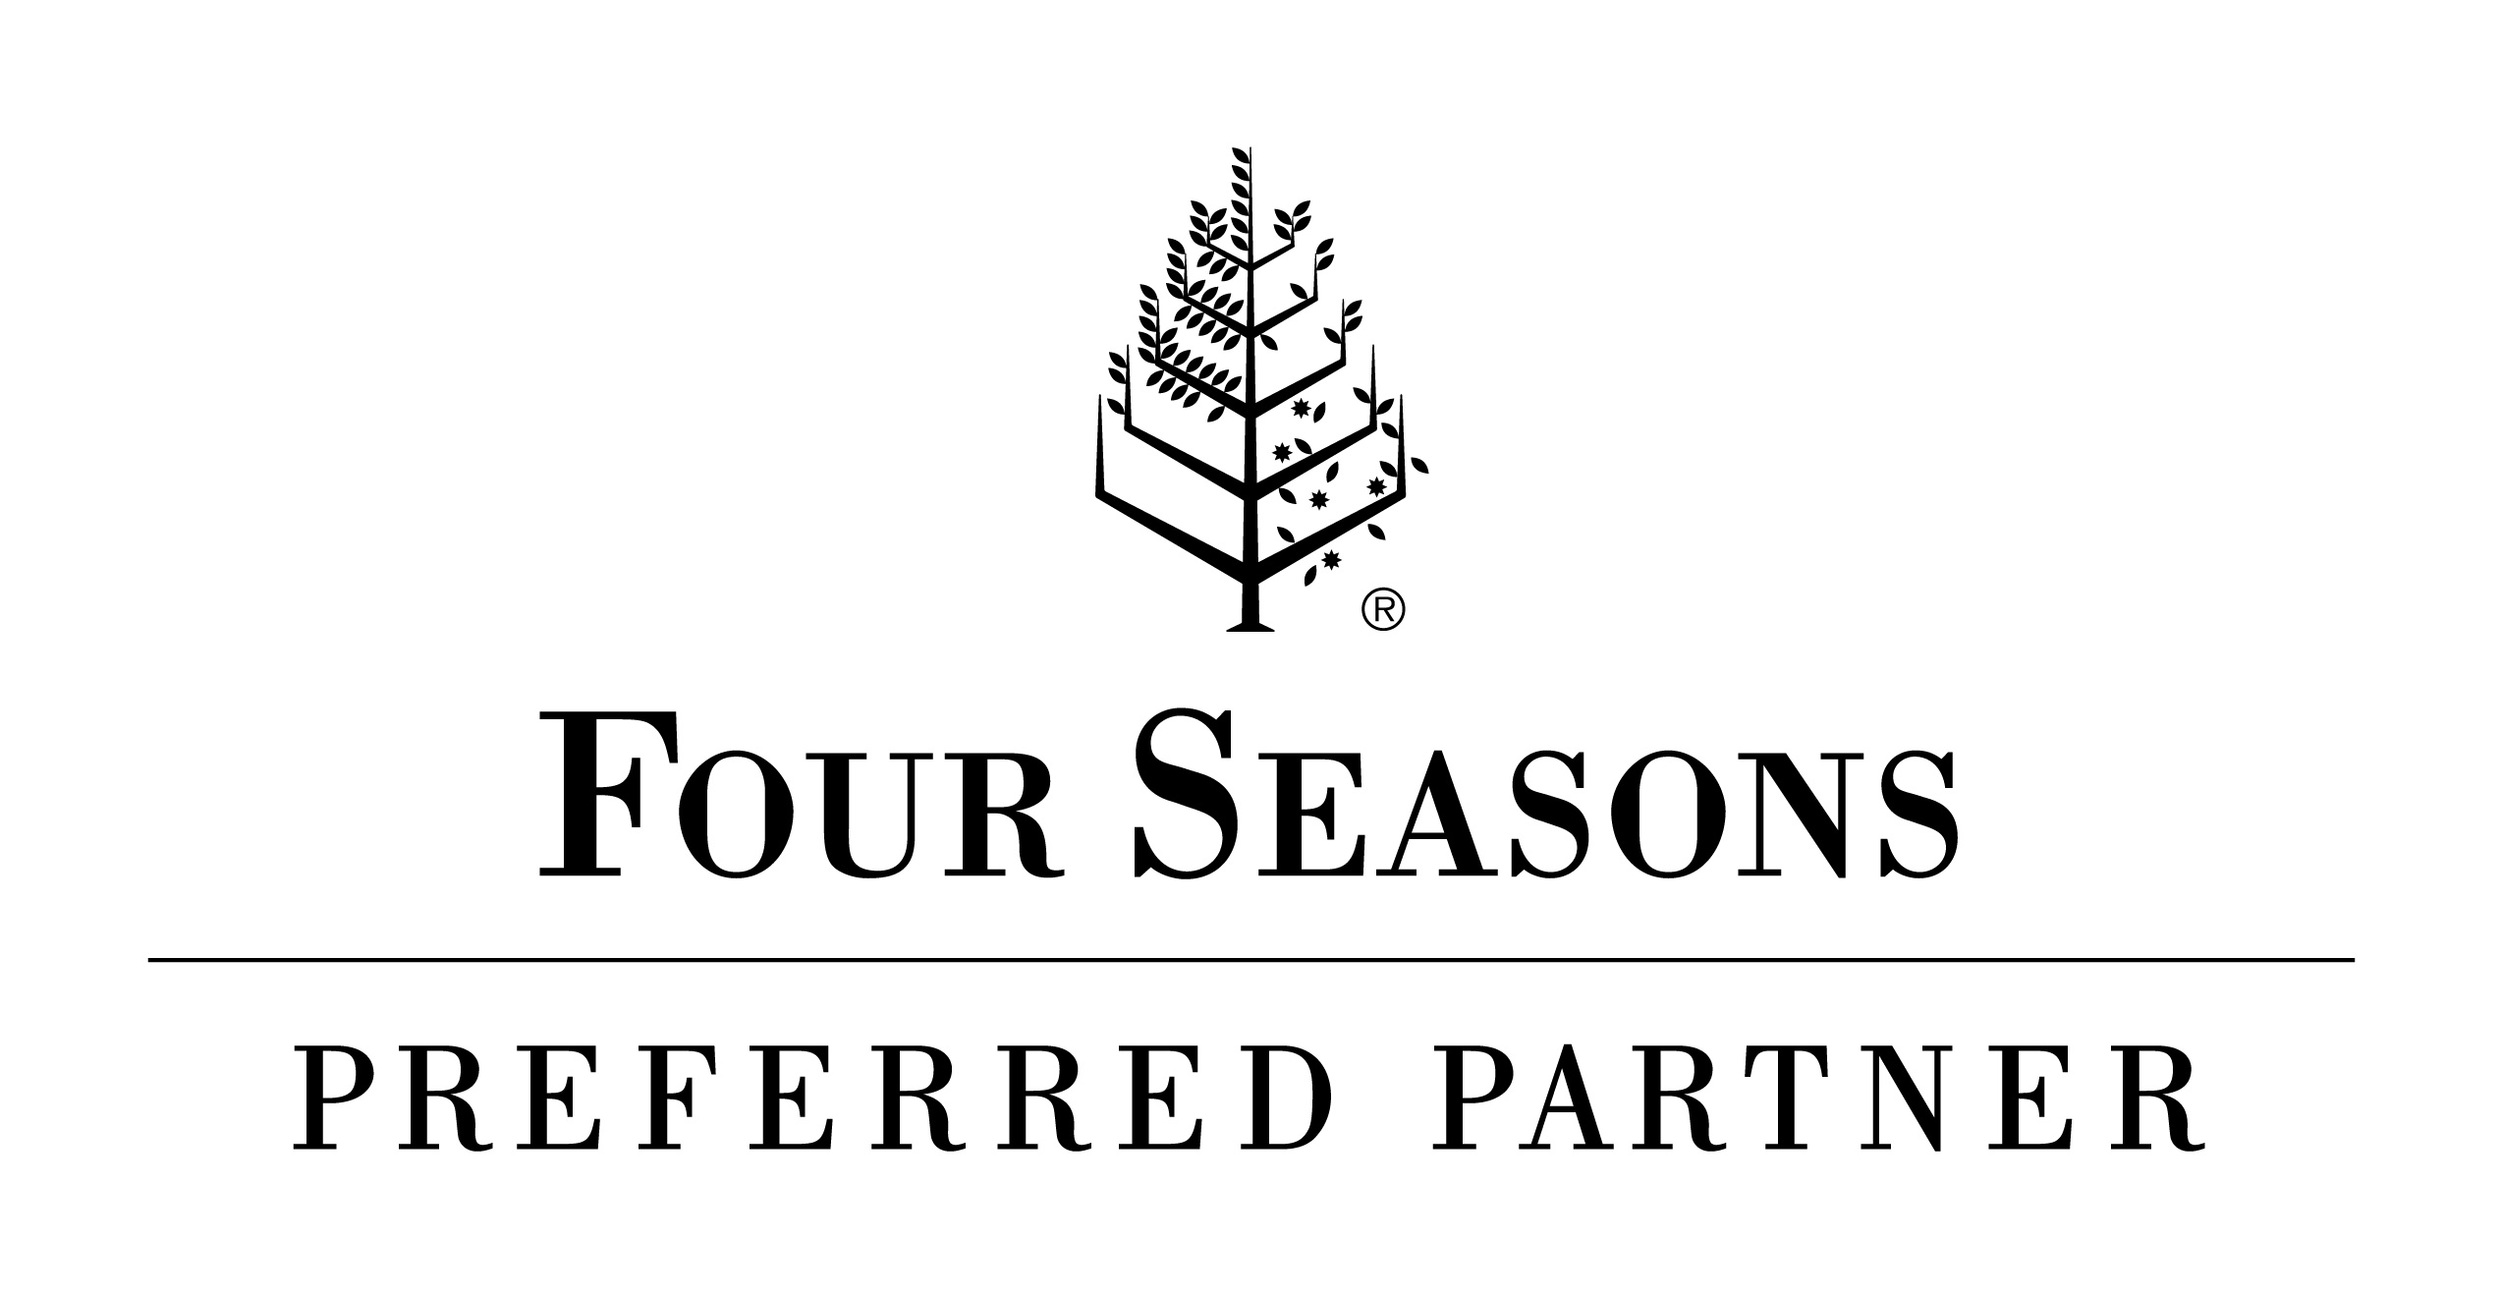 On all Four Seasons bookings, Altitude Clients receive the following Four Seasons Preferred Partner benefits:  -Daily Breakfast For 2  -Early Check-In/Late Check-Out  -Room Upgrade at Check-In If Available  -$100 USD Spa or Dining Credit  -Complimentary Wireless High Speed Internet on Suite Bookings   **Select Properties & Promotions Include Additional/Alternate Benefits